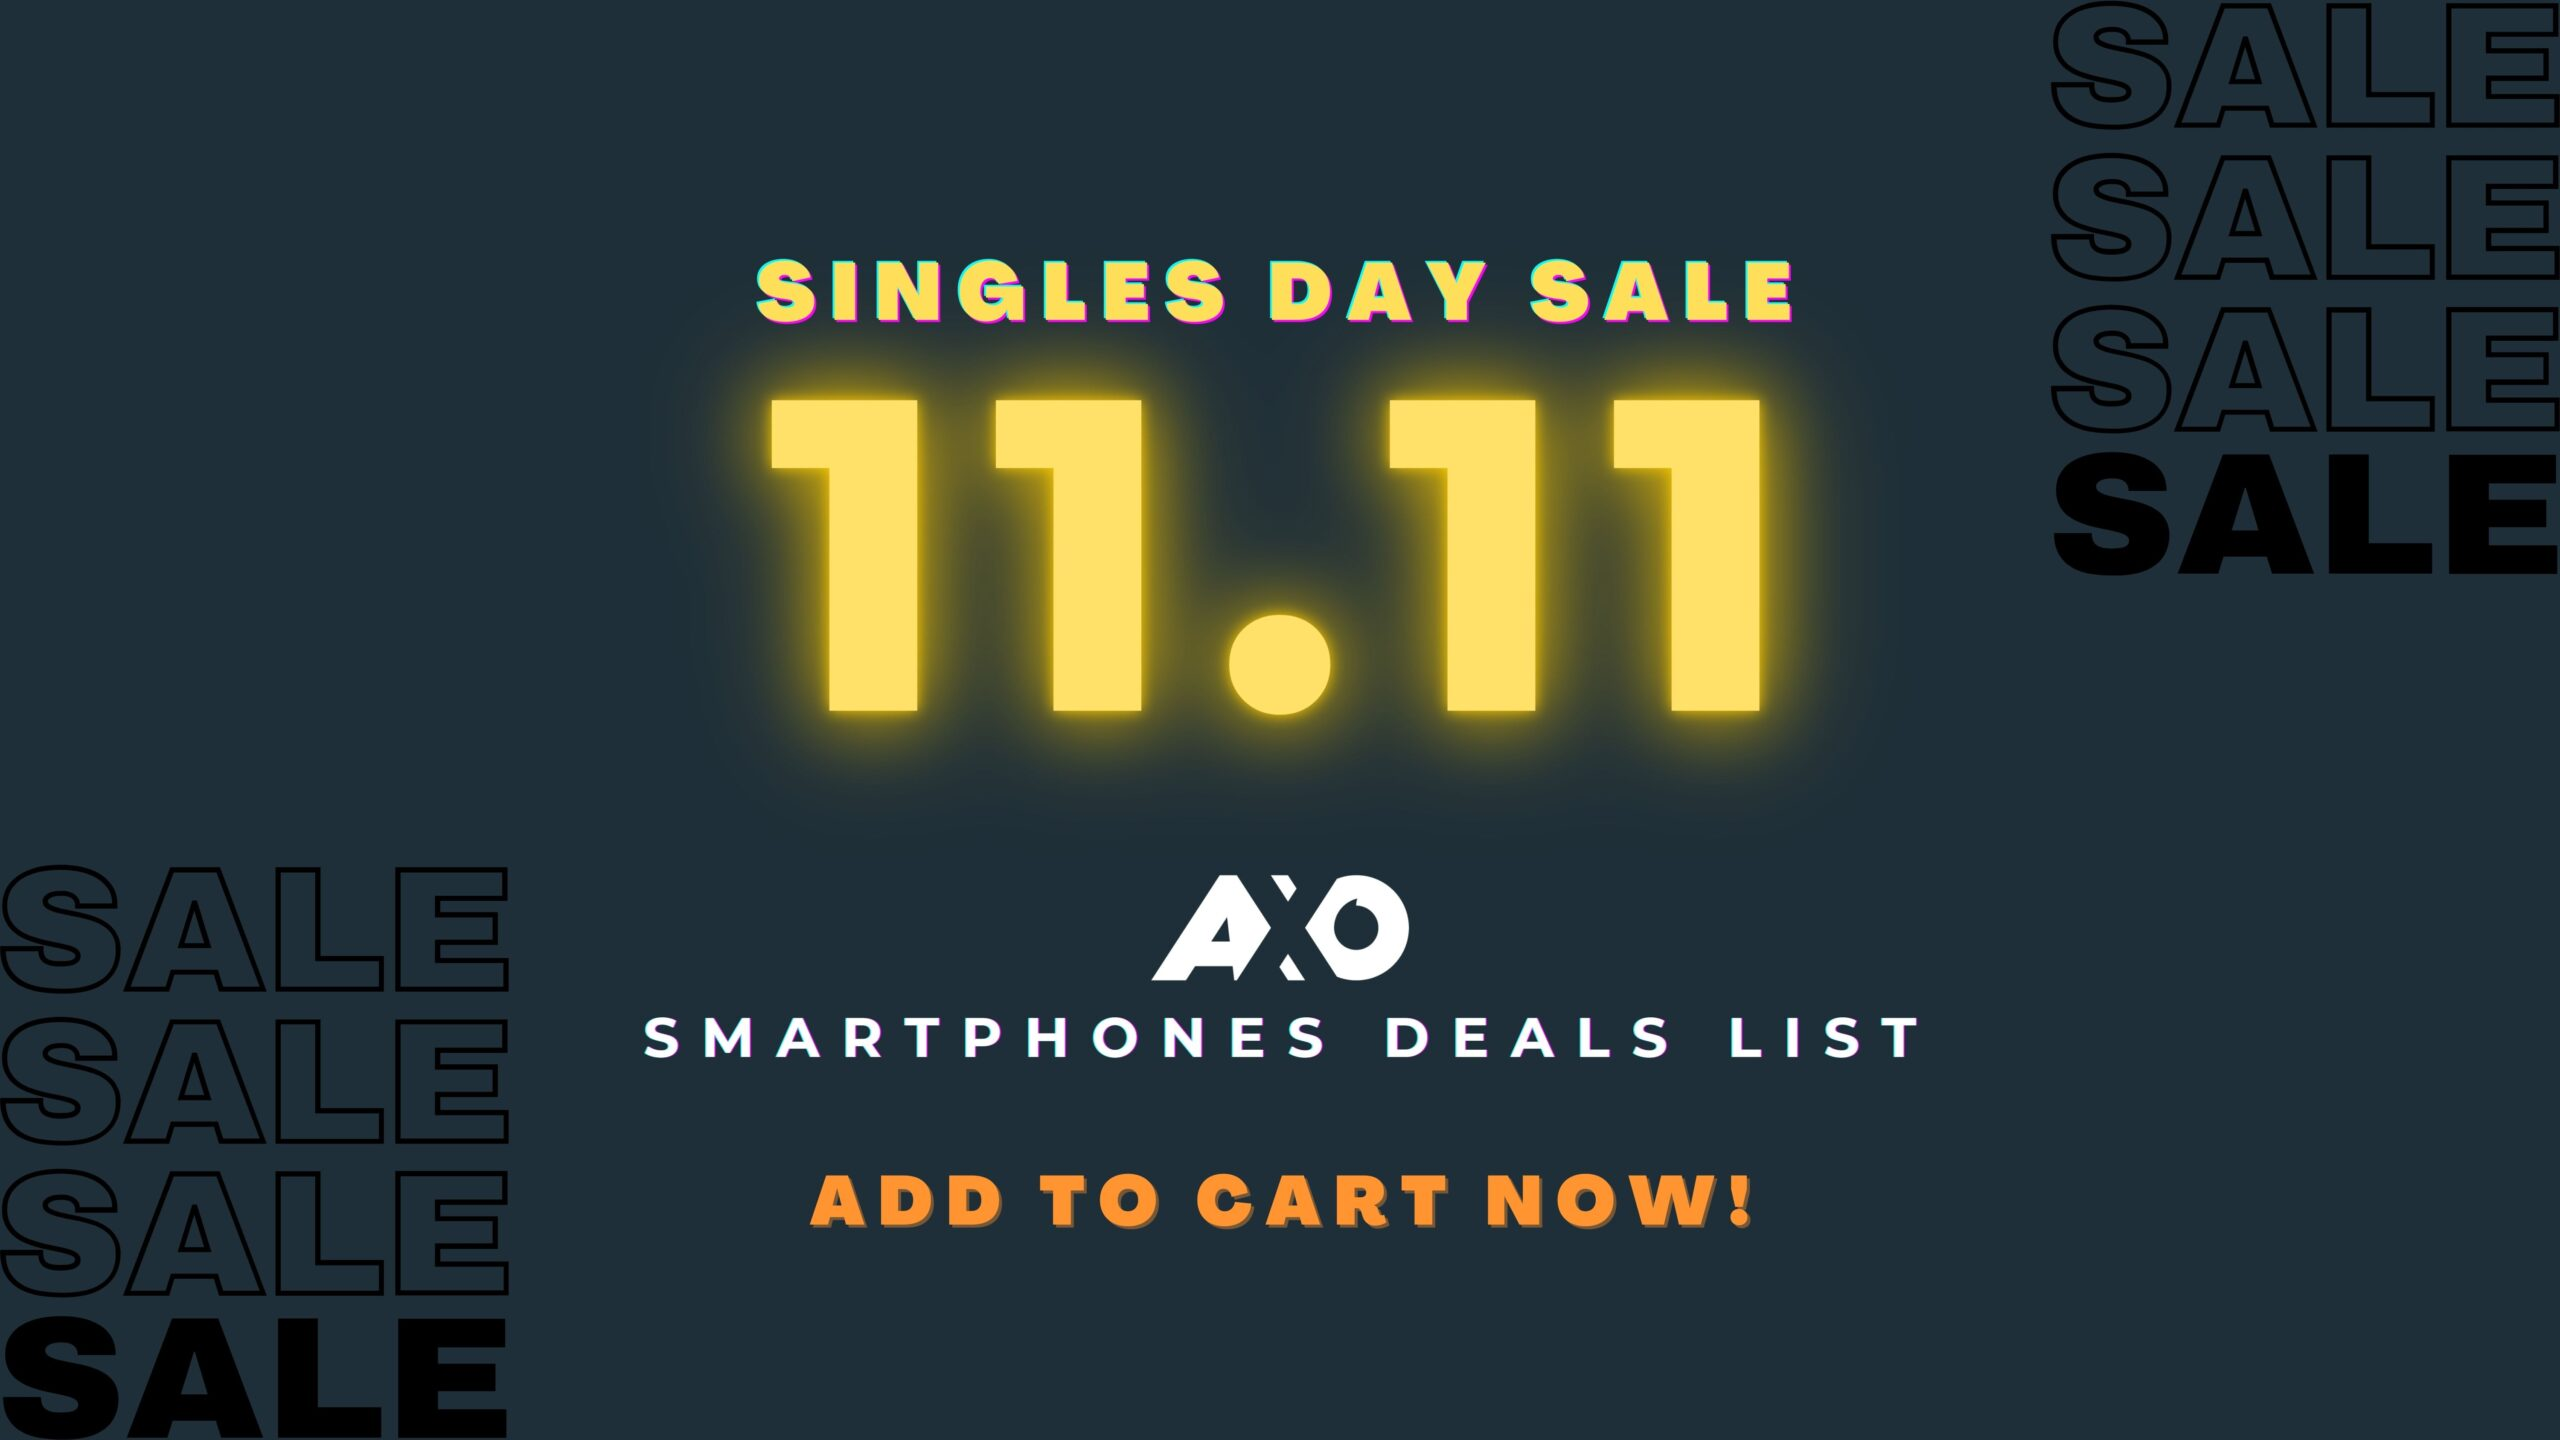 [2020] Singles Day Smartphone Deals this 11.11 Sale! Add To Cart Now! 3